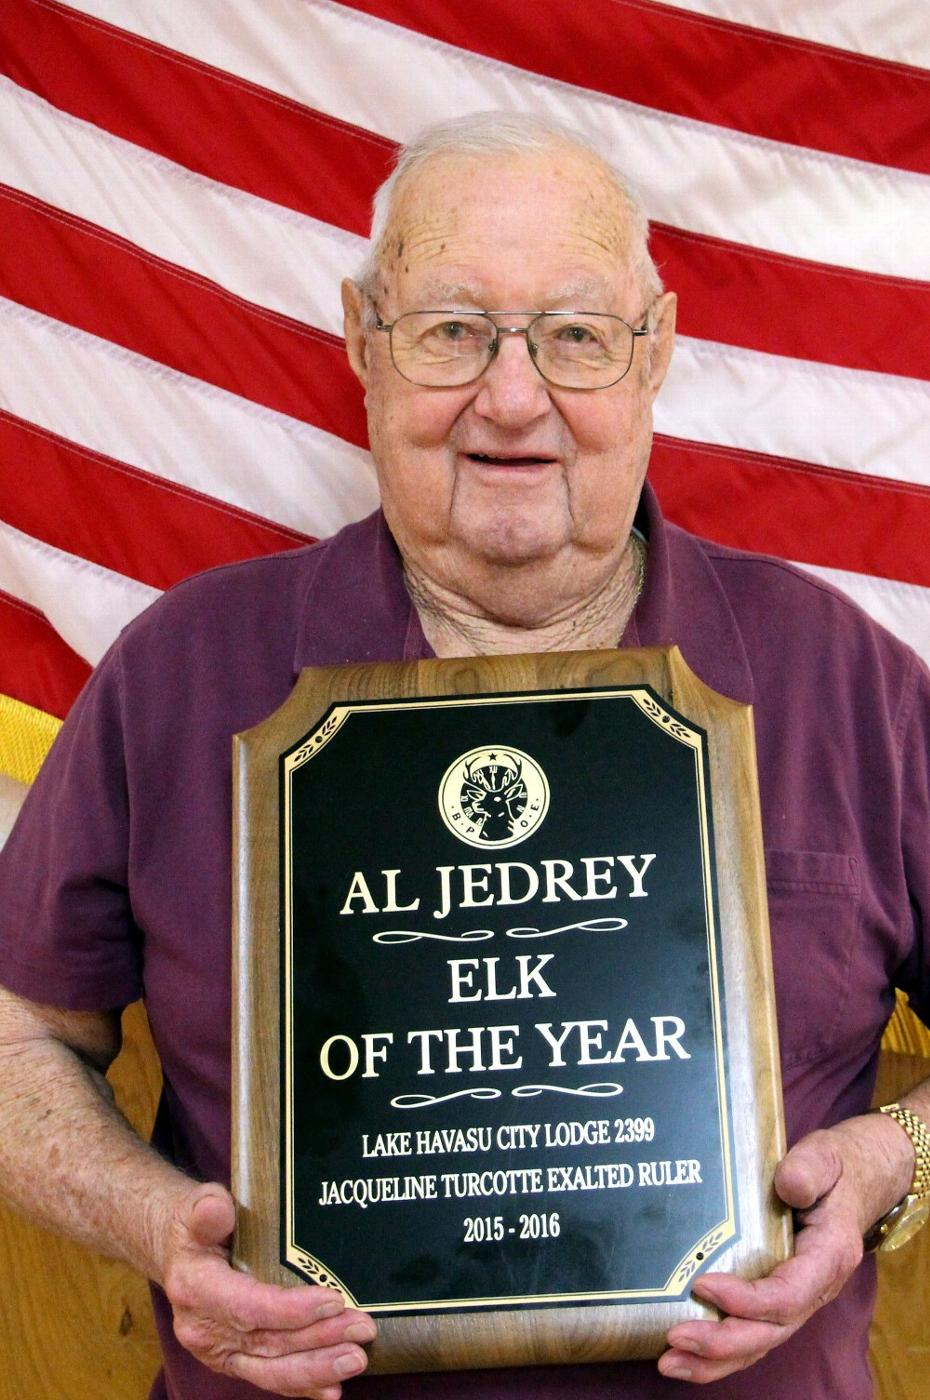 Al Jedrey wins Elk of the Year Award. A well deserved recognition as Al along with his wife Kay, have done a great job of decorating our Lodge for many years. Congratulations Al and Kay!